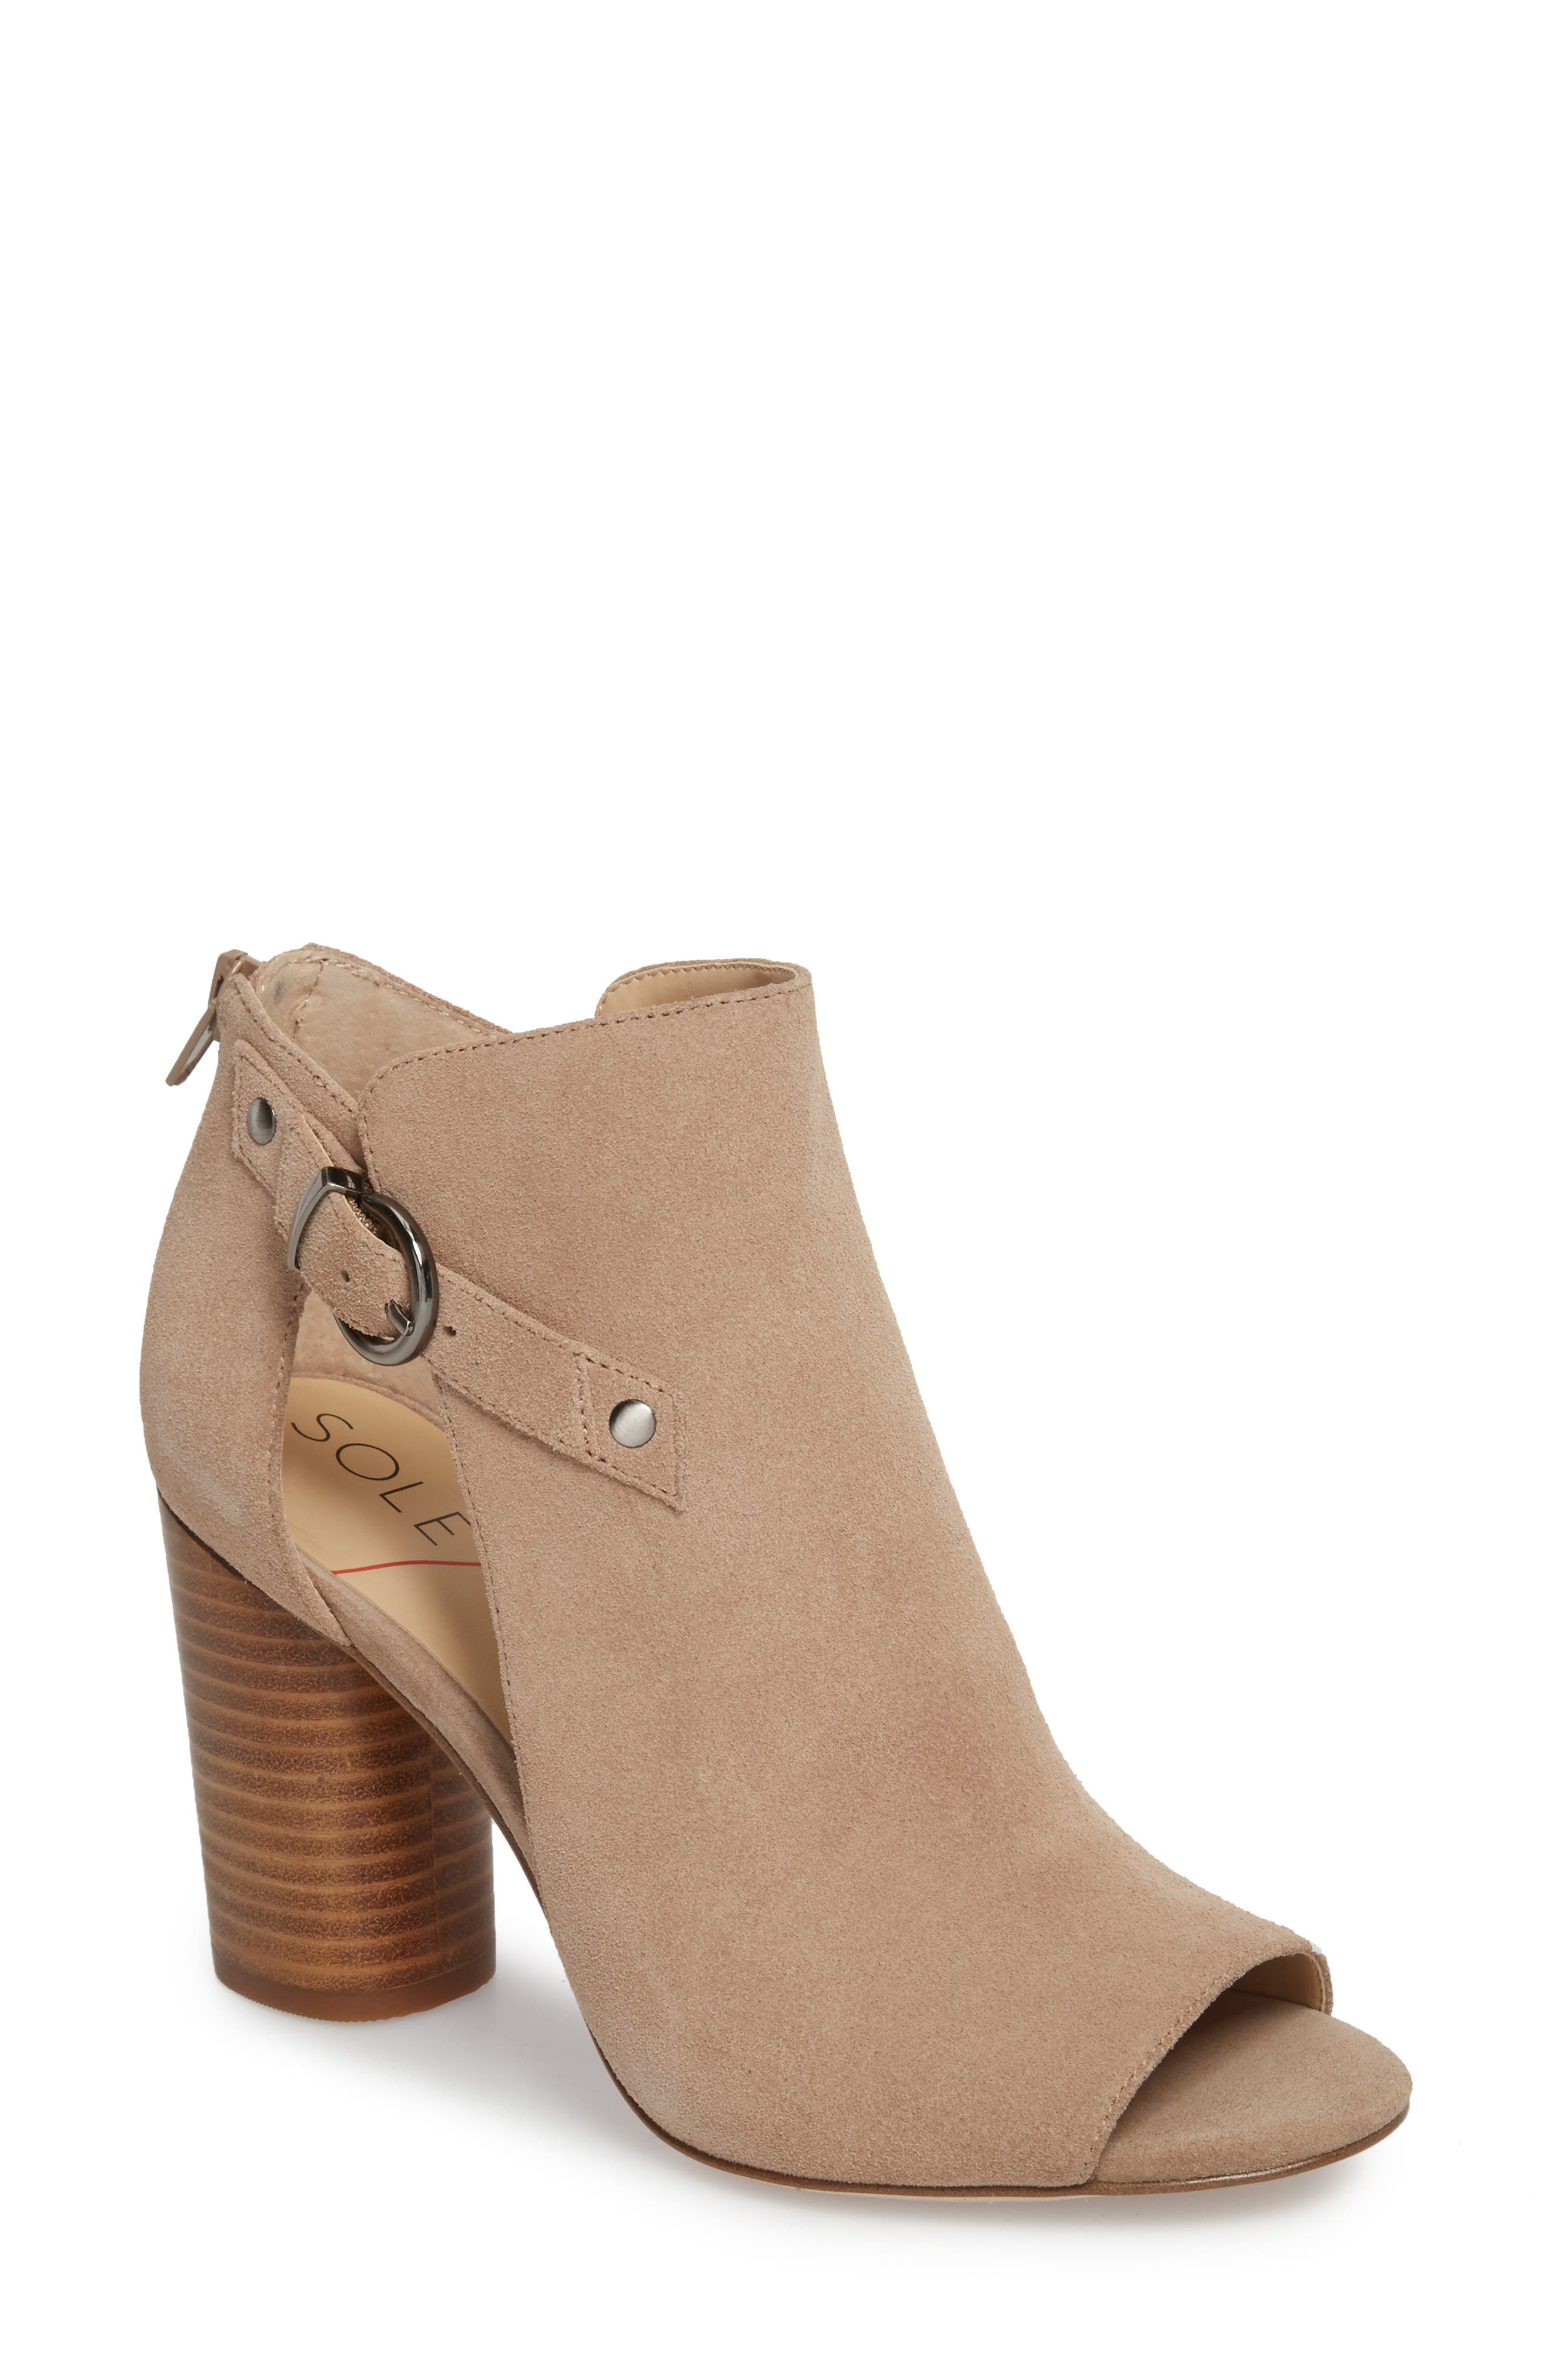 Sally Column Heel Sandal,                         Main,                         color, Warm Taupe Cow Suede